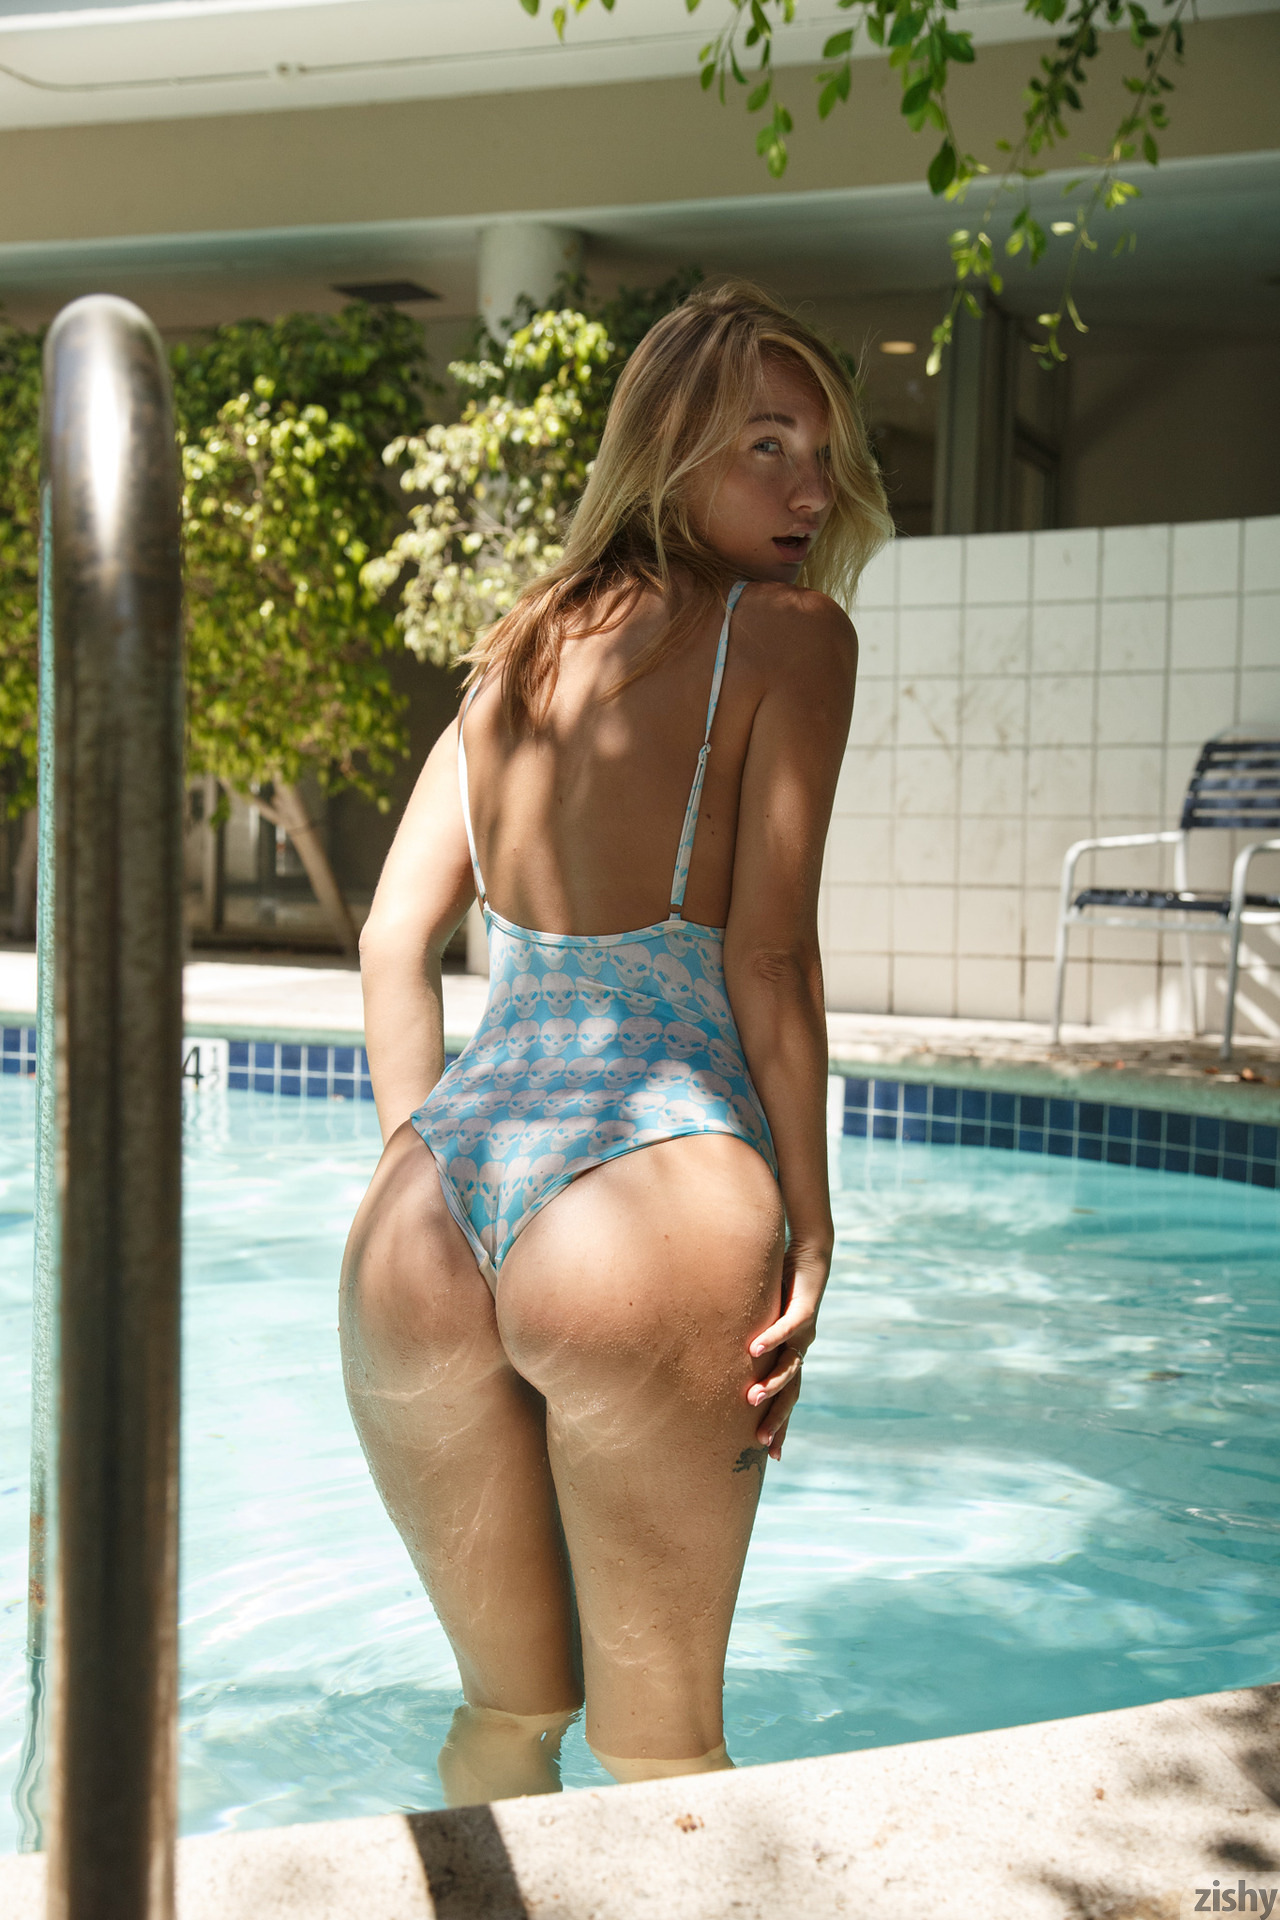 Lily Ivy Poolside Feminism 0064